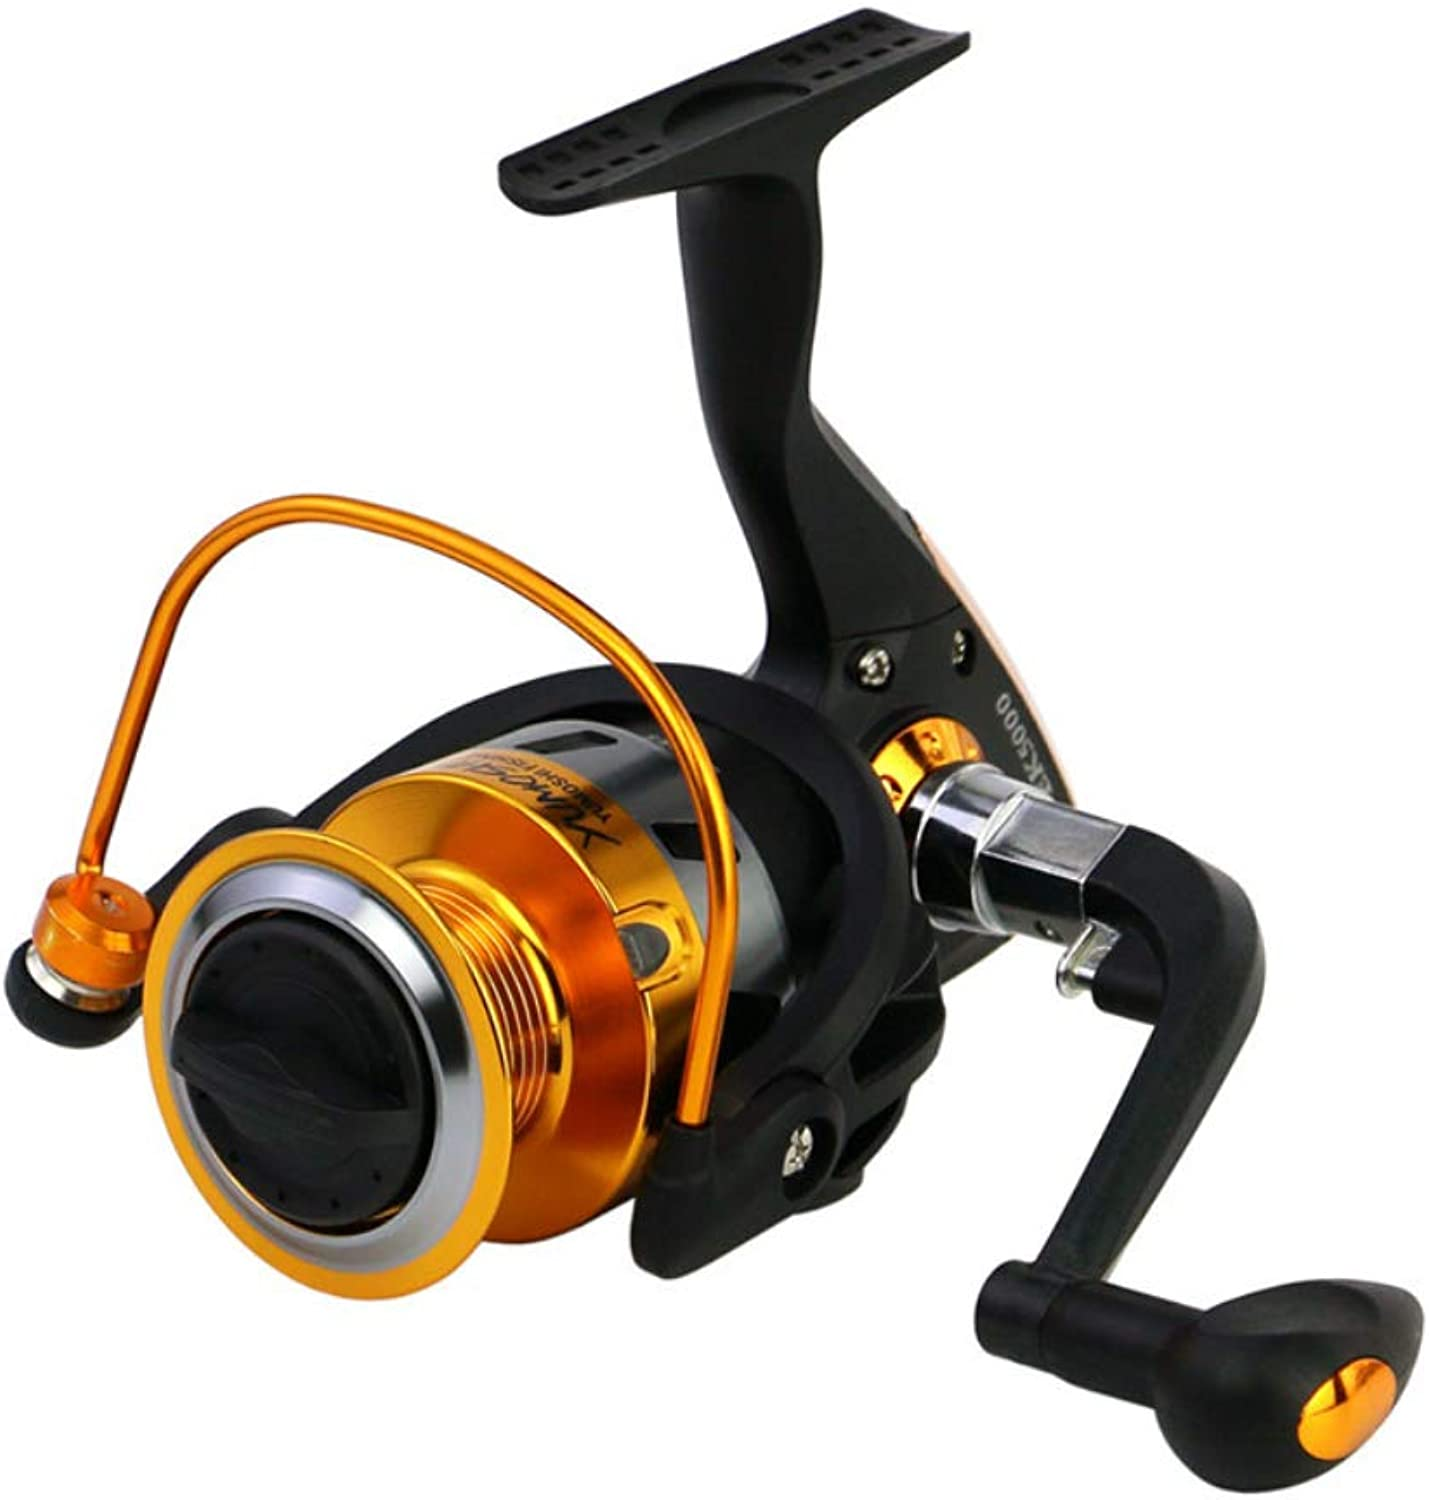 Fishing Reels,13+1 BB, Light and Smooth Spinning Reels, Powerful Carbon Fiber Drag, Salt and Freshwater Fishing,1000model